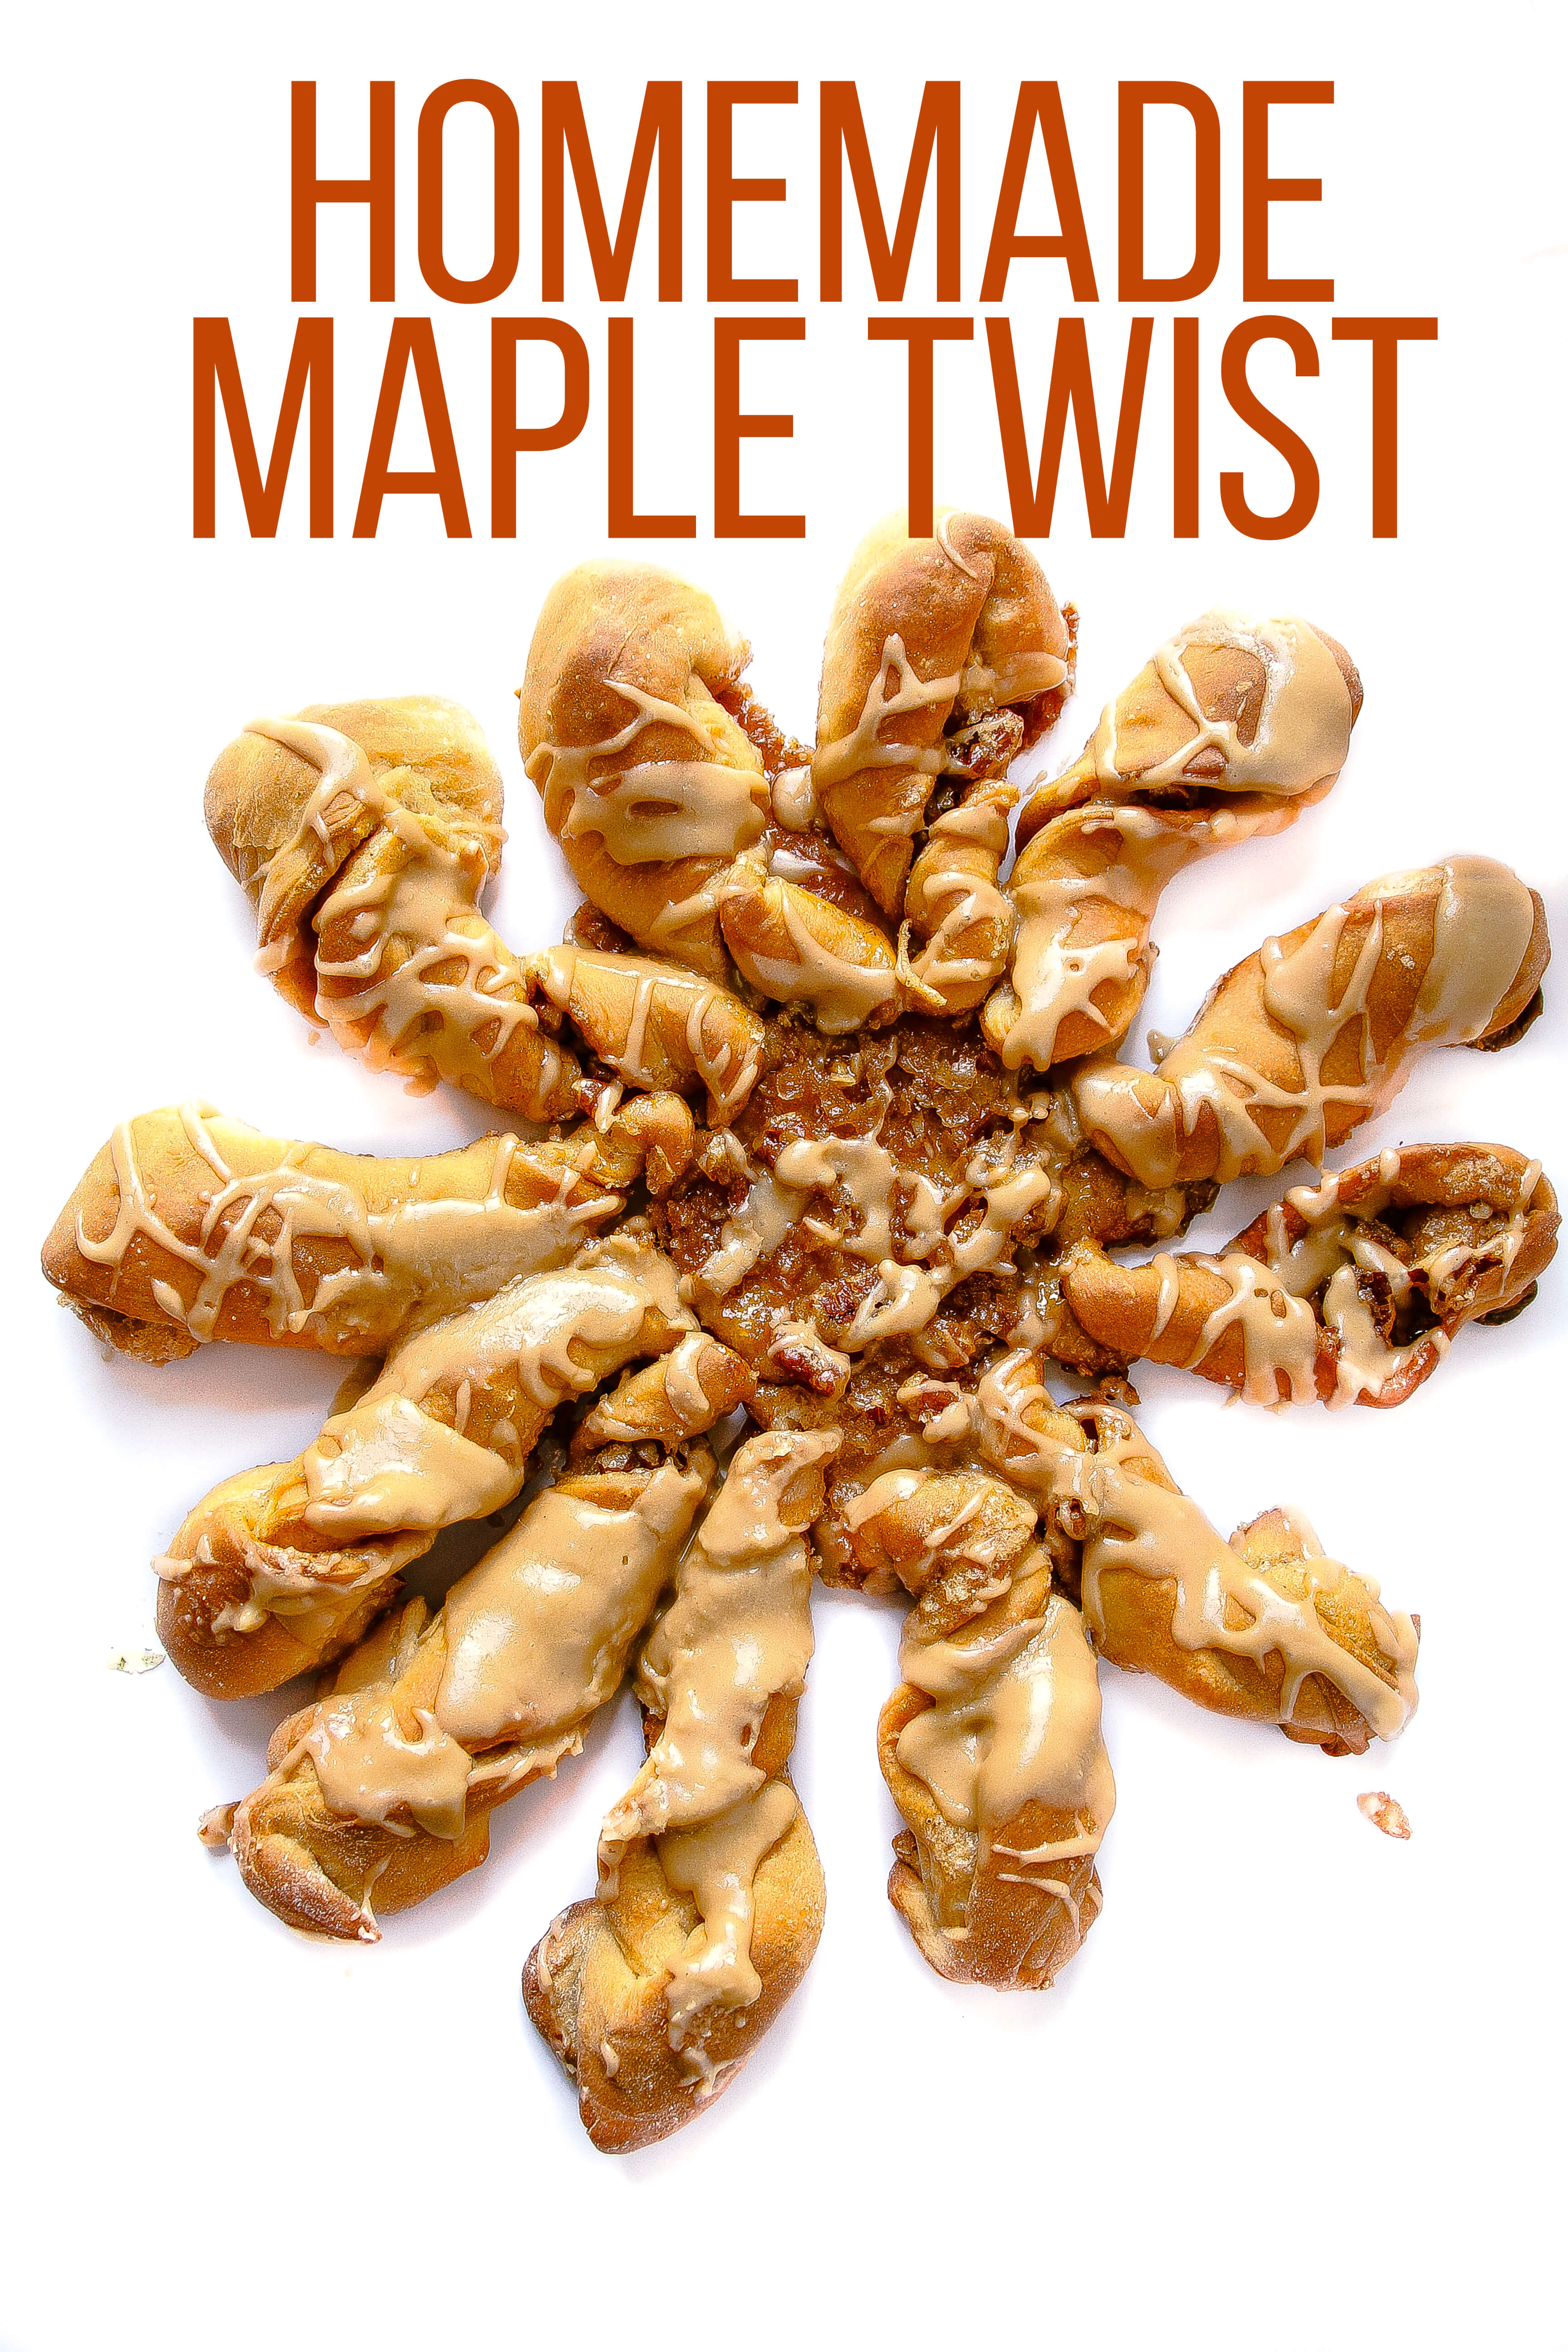 Soft and fluffy maple infused cinnamon roll twists covered in sweet maple glaze. Yum!